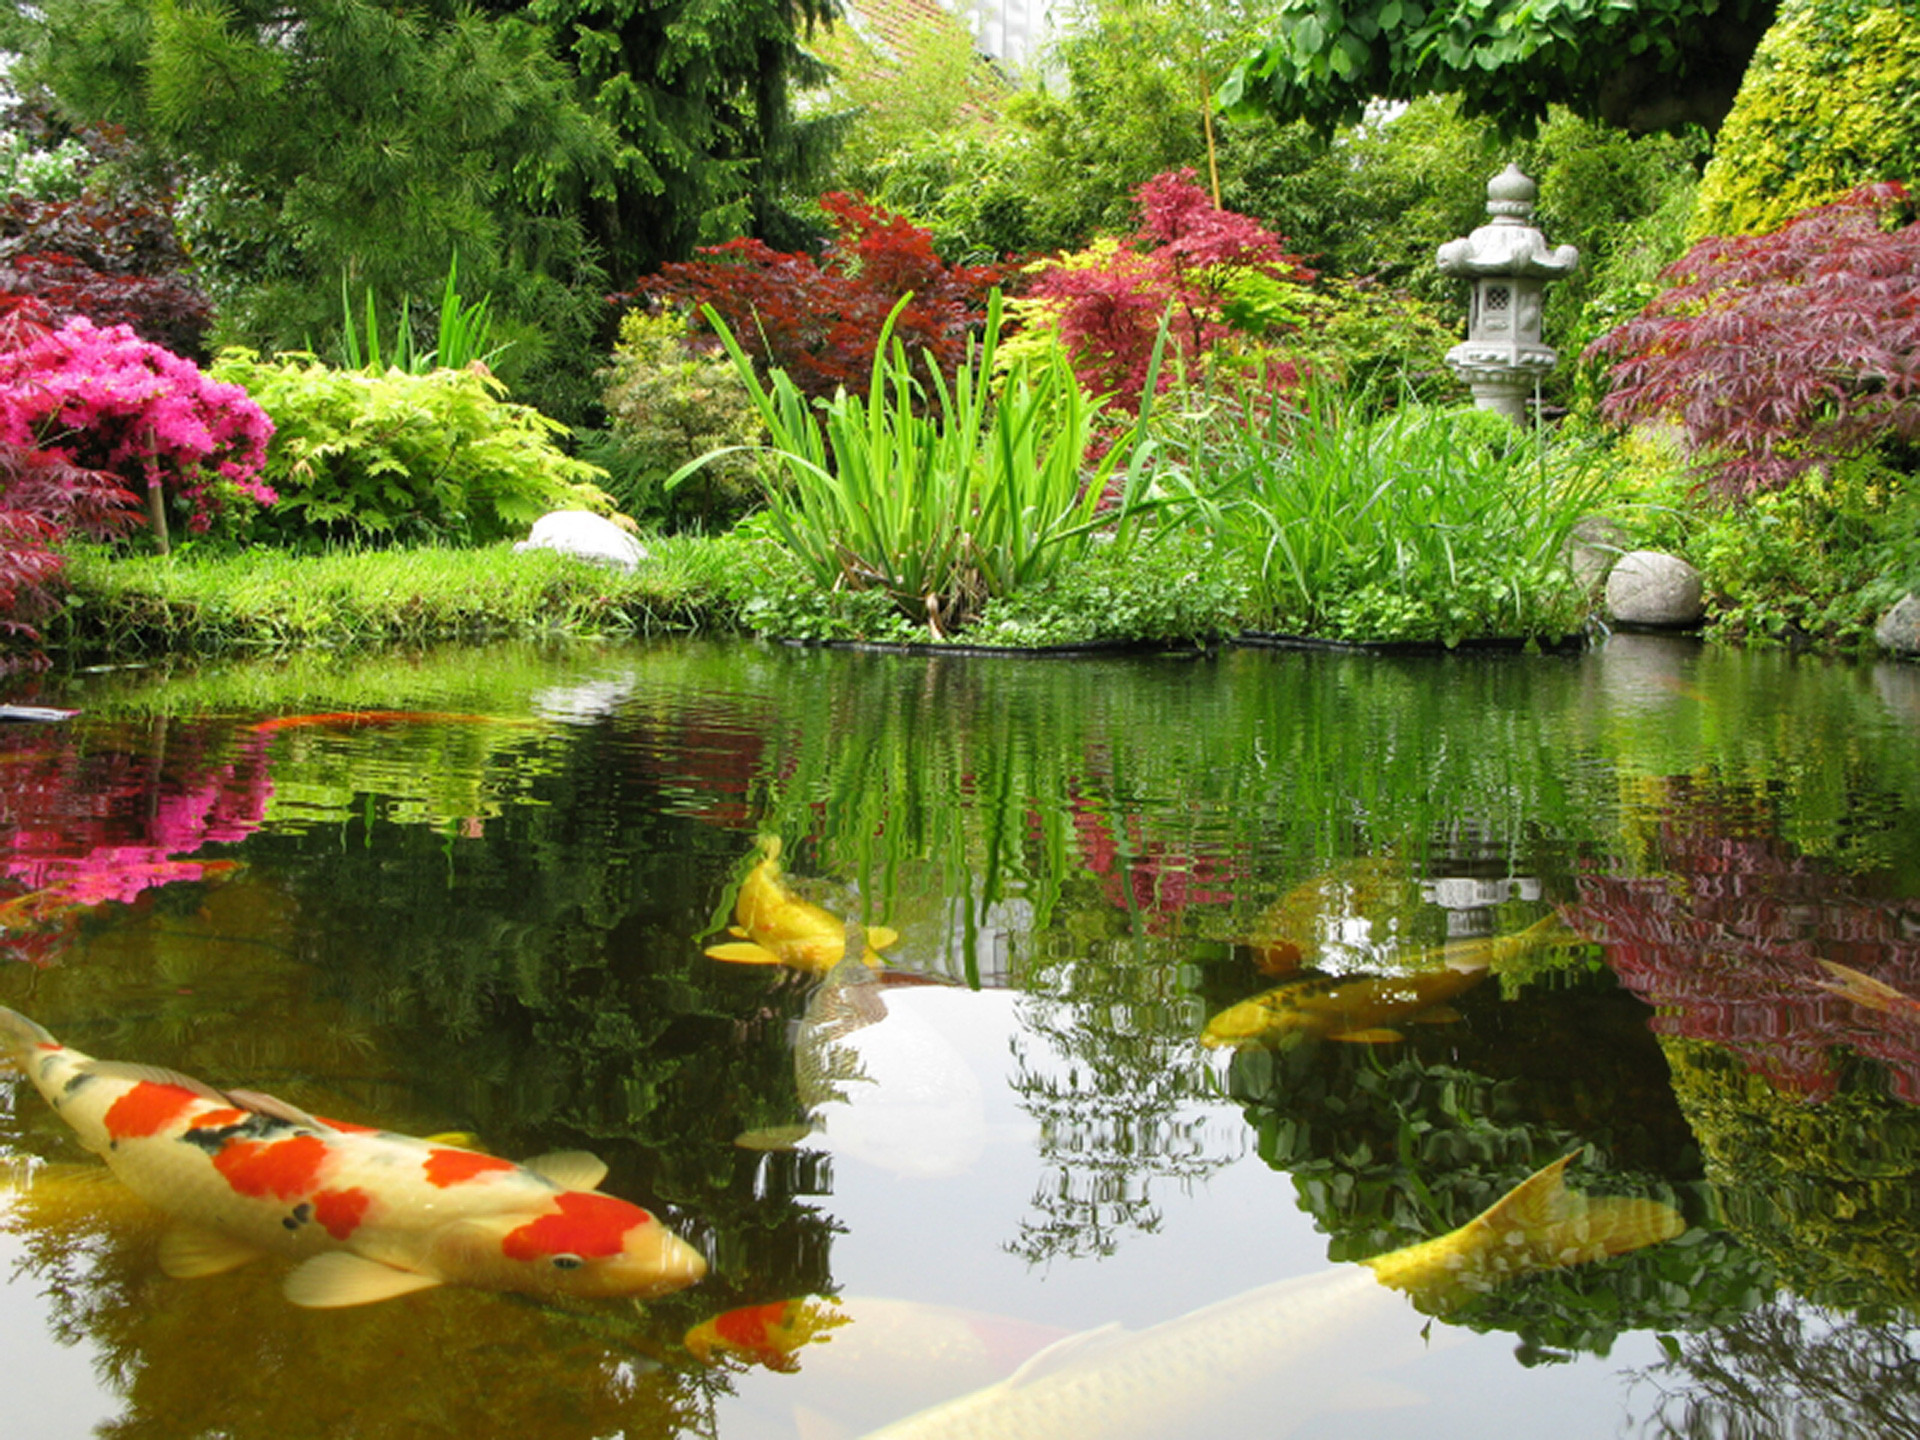 1920x1440 Residential Outdoor Koi Ponds - Long Island New York - Okeanos Aquascaping